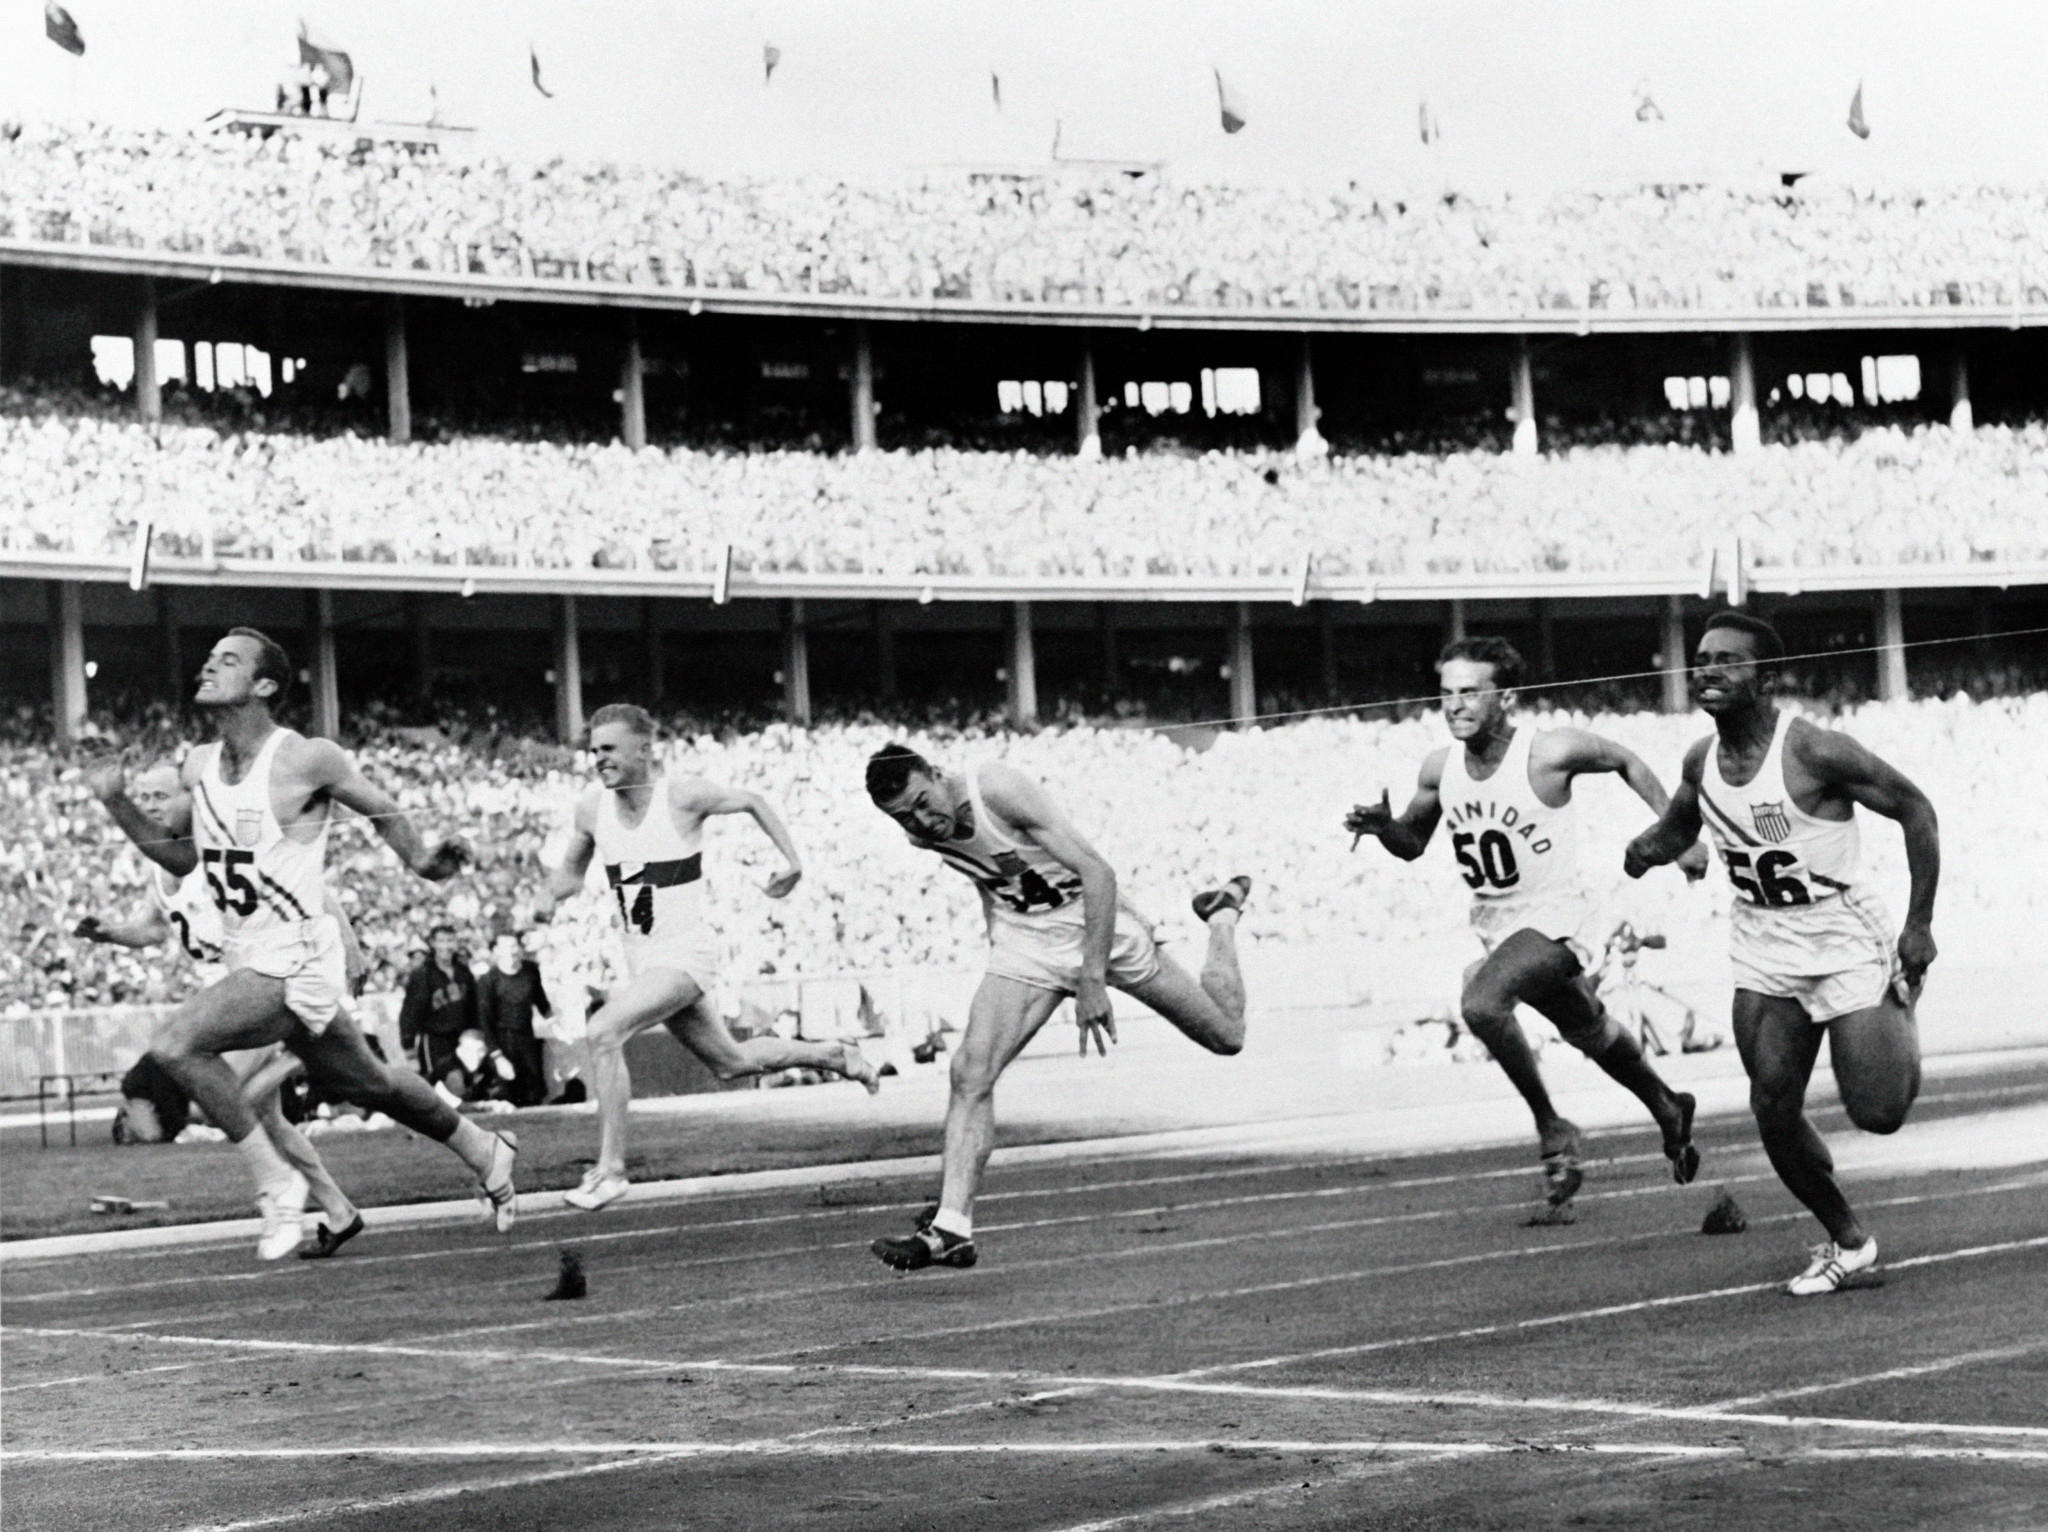 Bobby Joe Morrow wins the 100m race at Melbourne 1956 ©Getty Images